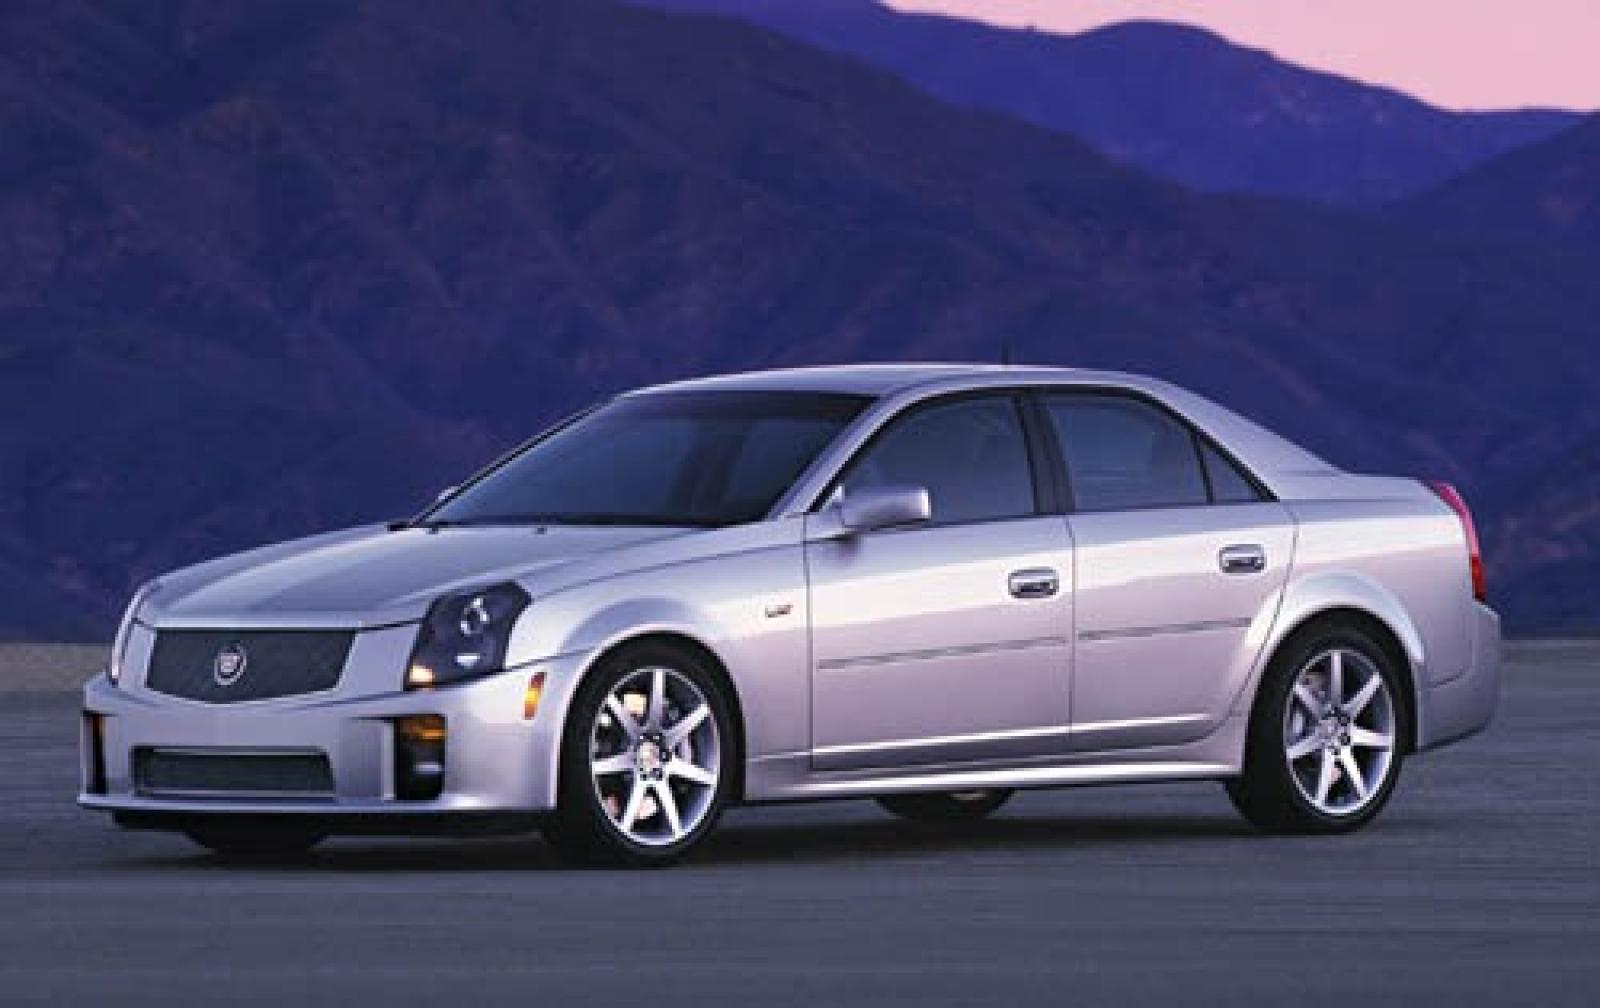 Cadillac Cts-V Wagon For Sale >> 2009 Cadillac Cts V Test Drive And New Car Review 2009 .html | Autos Weblog